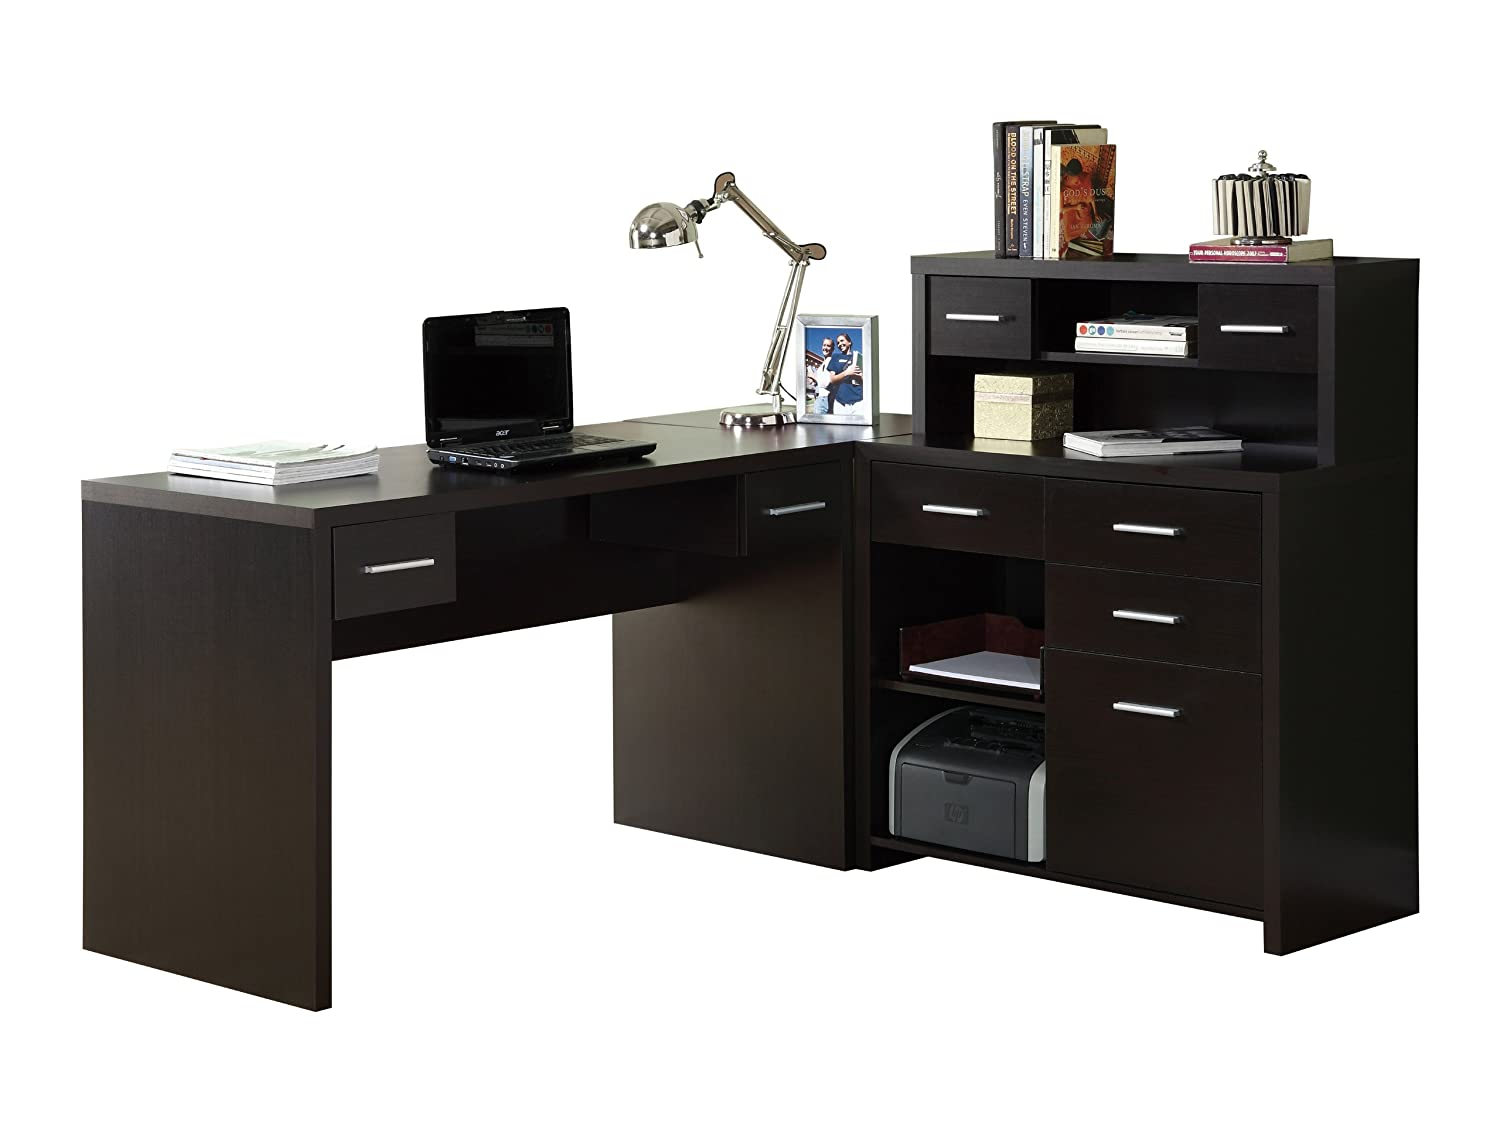 desks for home office. Amazon.com: Monarch Specialties Hollow-Core L-Shaped Home Office Desk, Cappuccino: Kitchen \u0026 Dining Desks For F